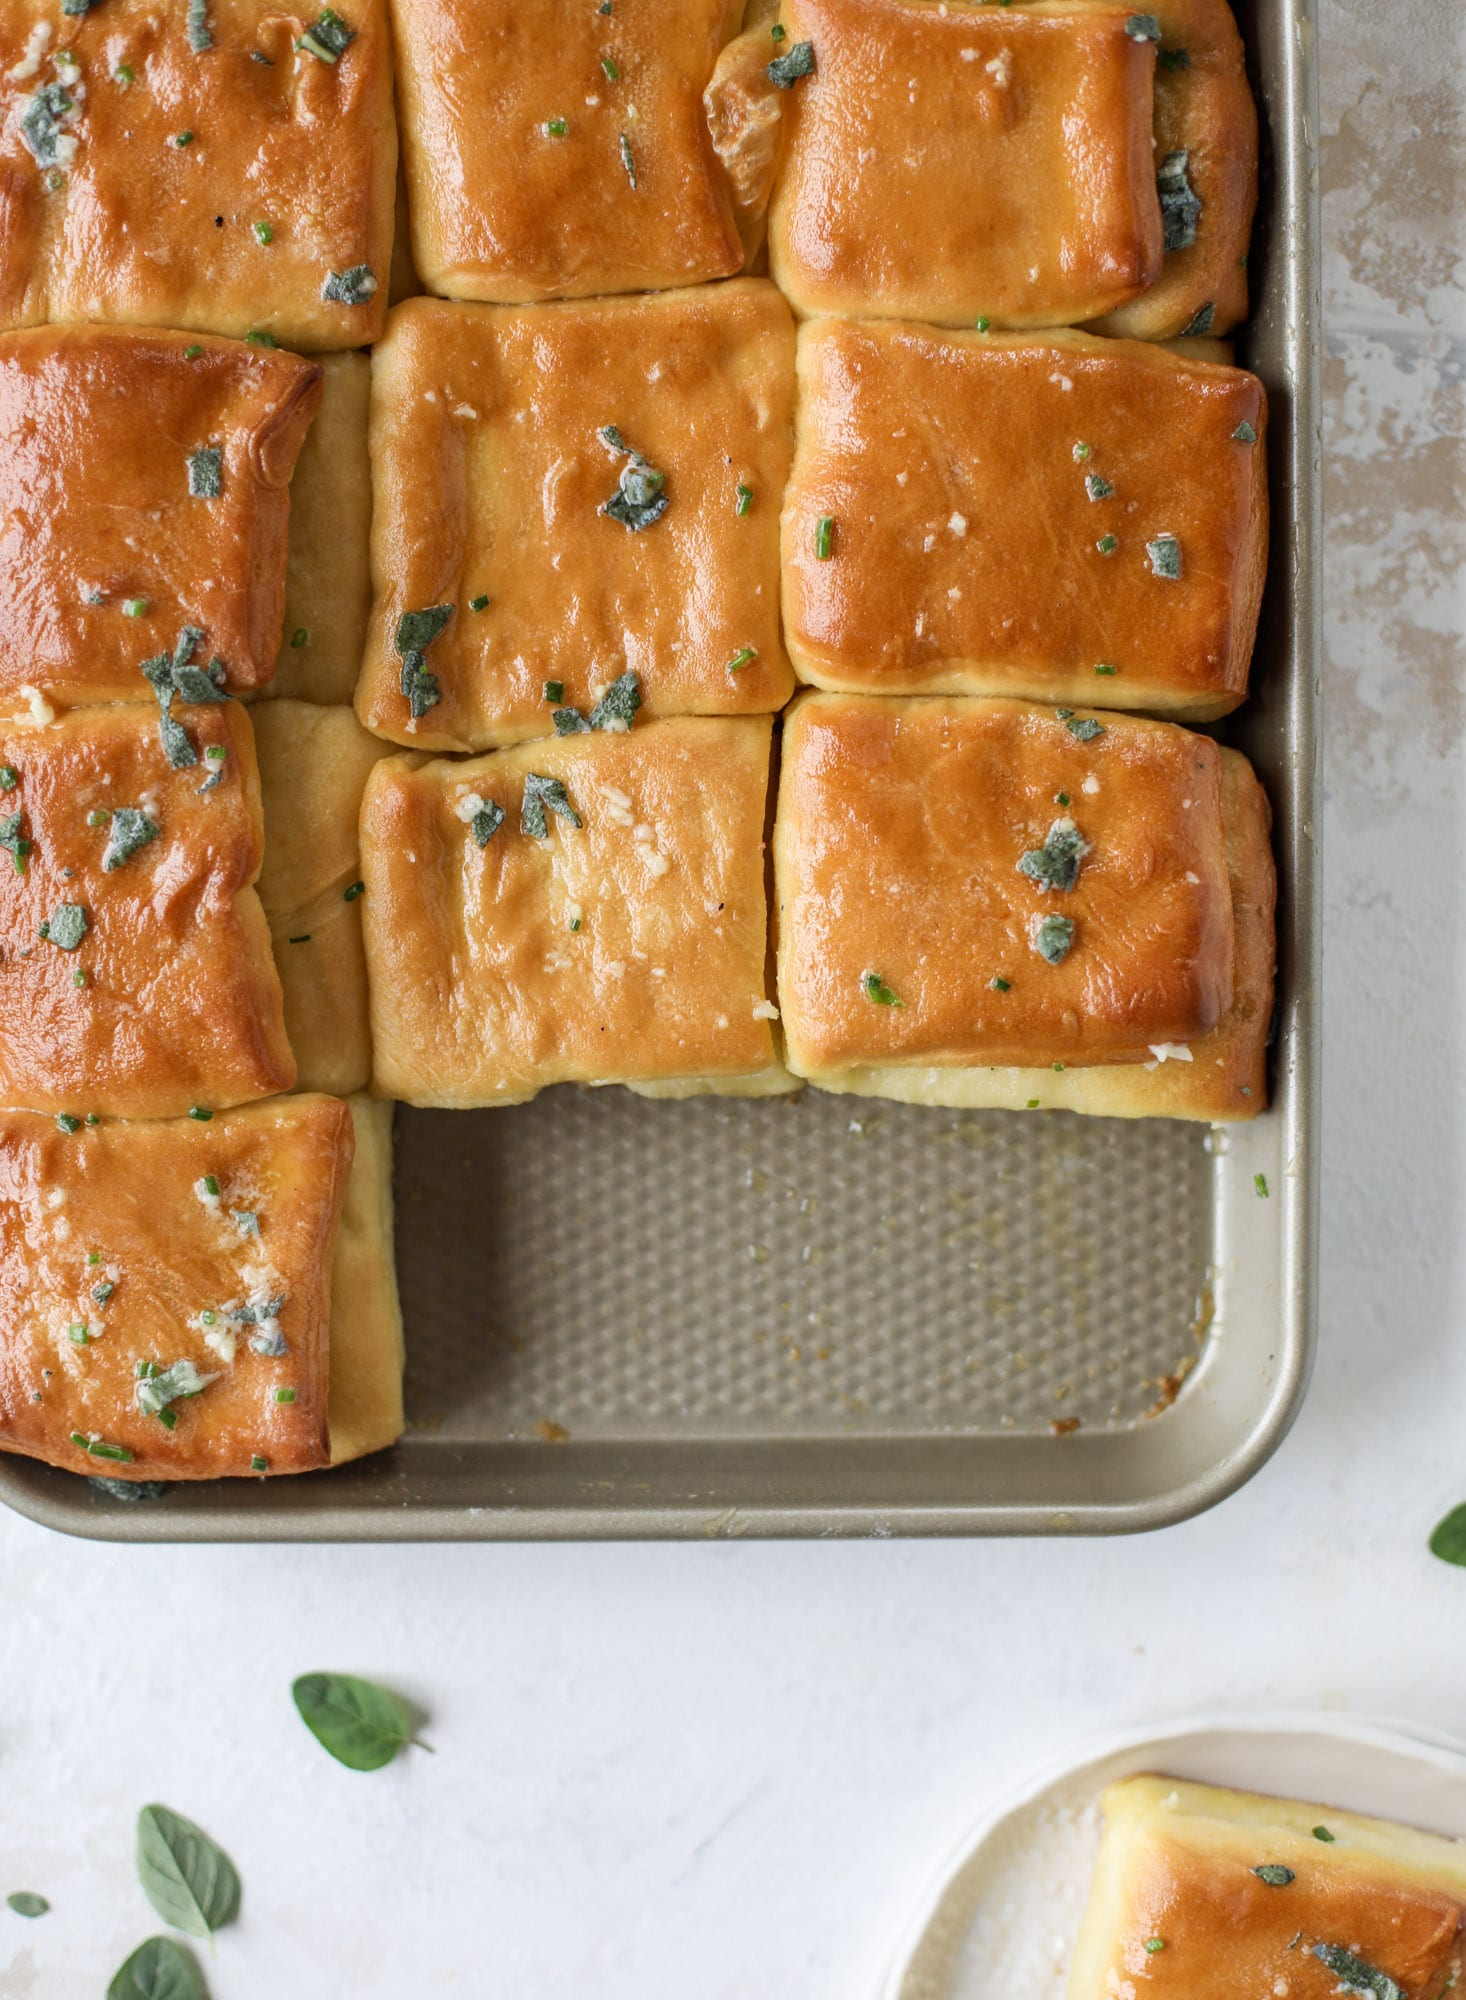 Garlic herb parker house rolls are full of incredibly buttery flavor! They are brushed with a garlic herb butter and are super fluffy, soft and tender. Perfect for Thanksgiving or the holidays and you can make the dough a bit ahead of time! I howsweeteats.com #parkerhouse #rolls